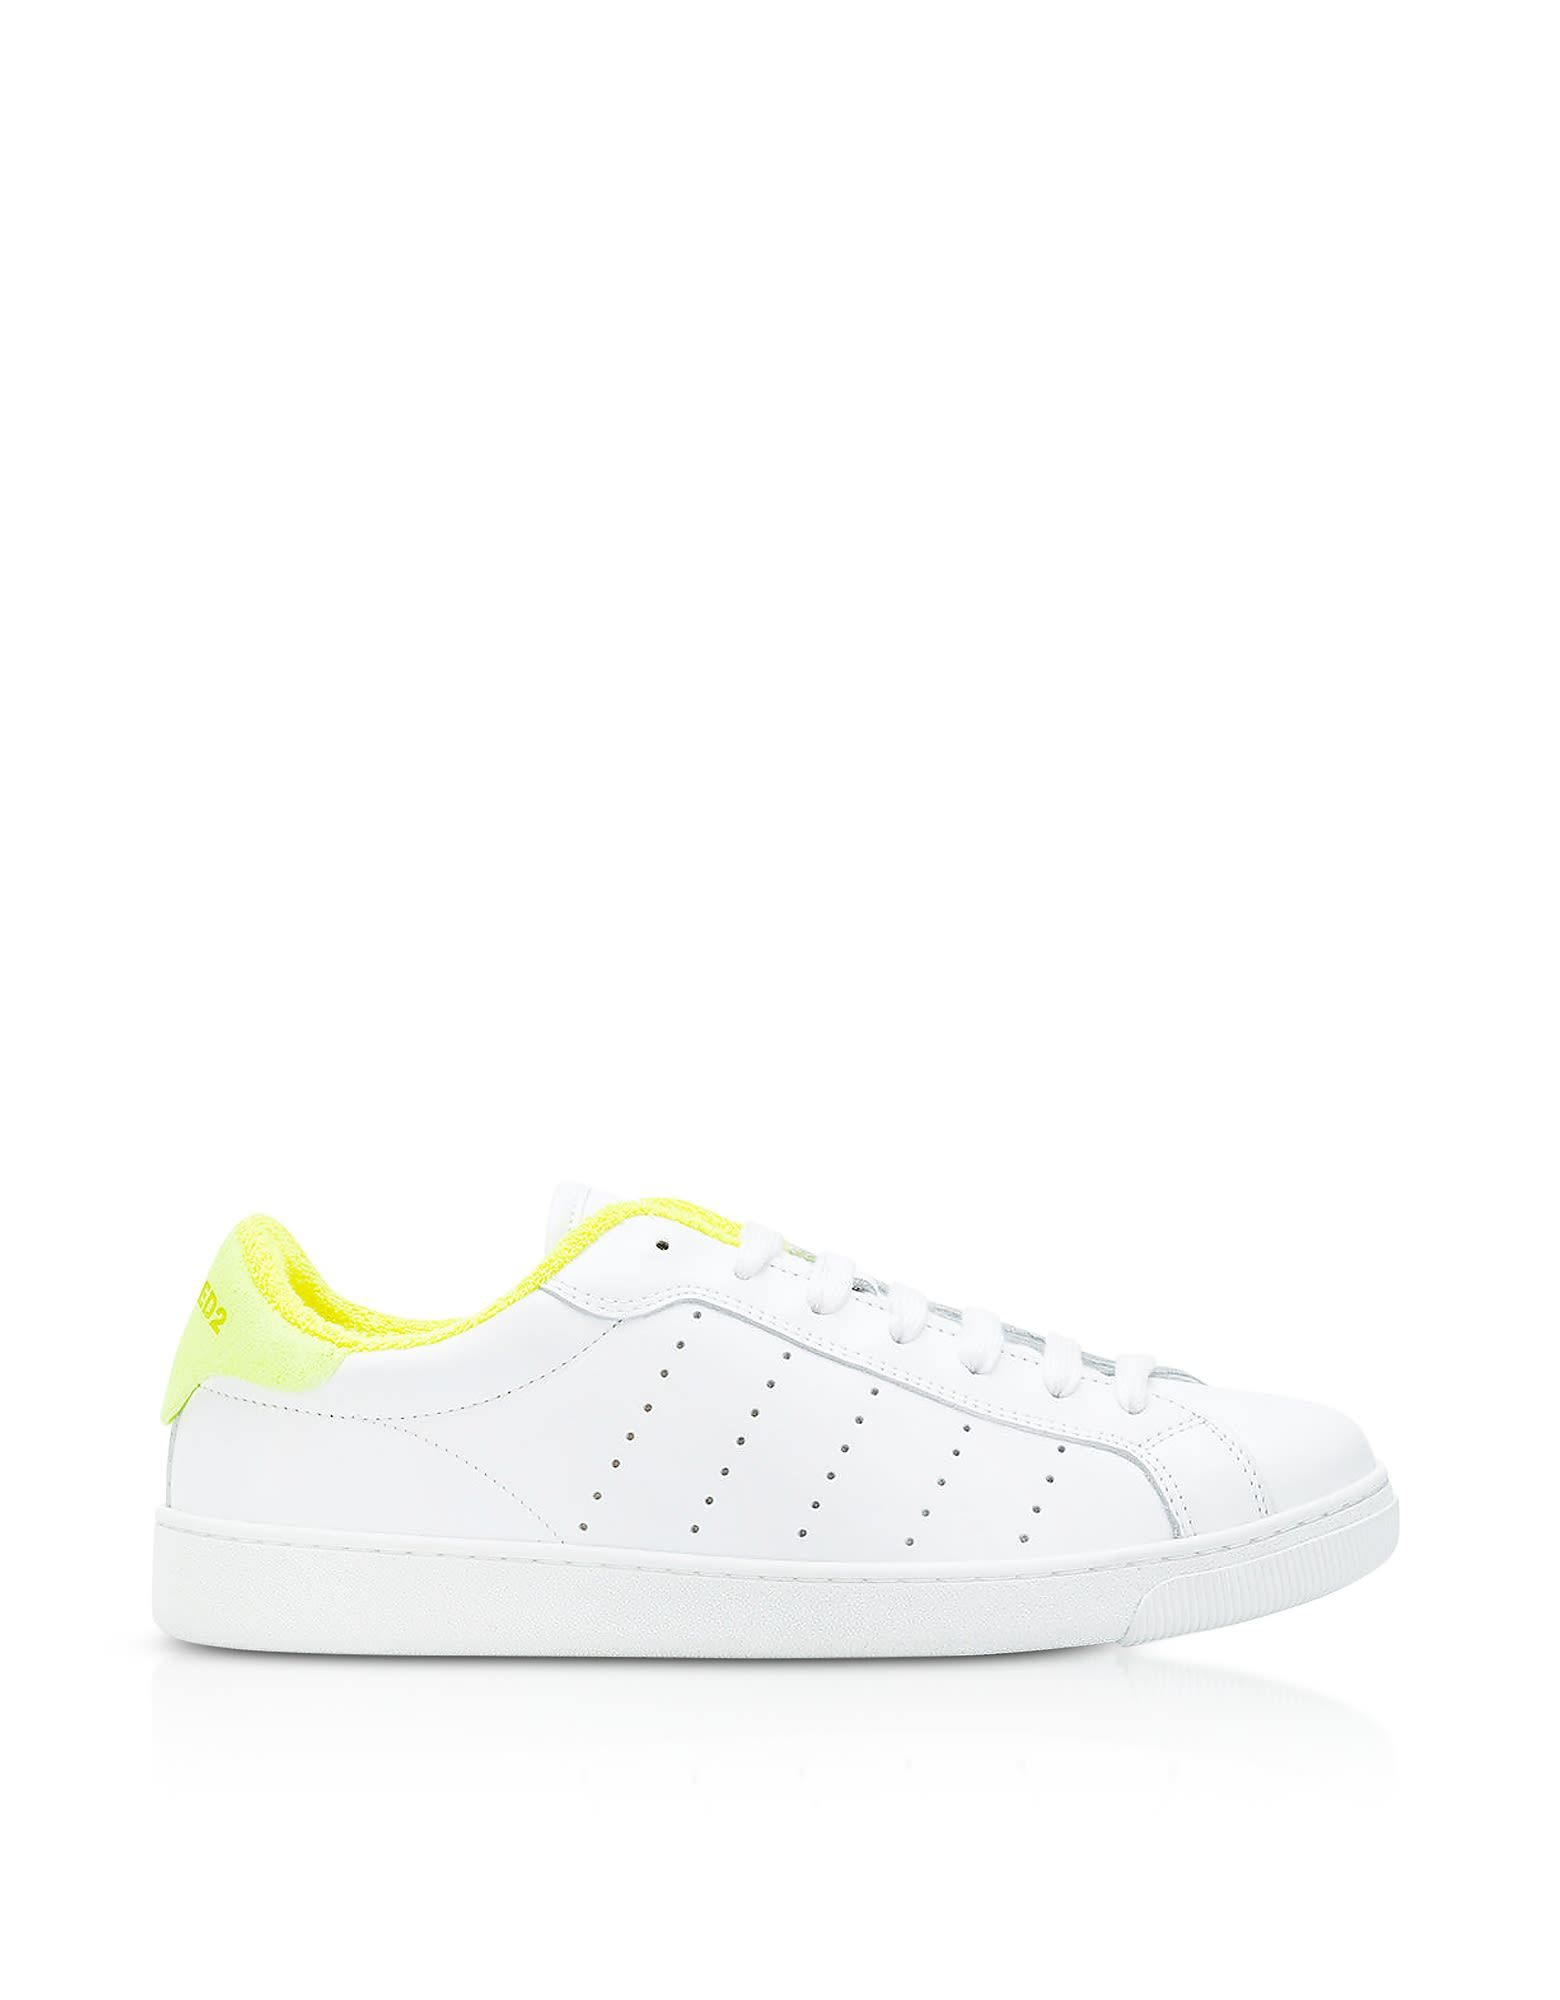 Dsquared2 Shoes, and Neon Leather Women's Low Top Sneakers